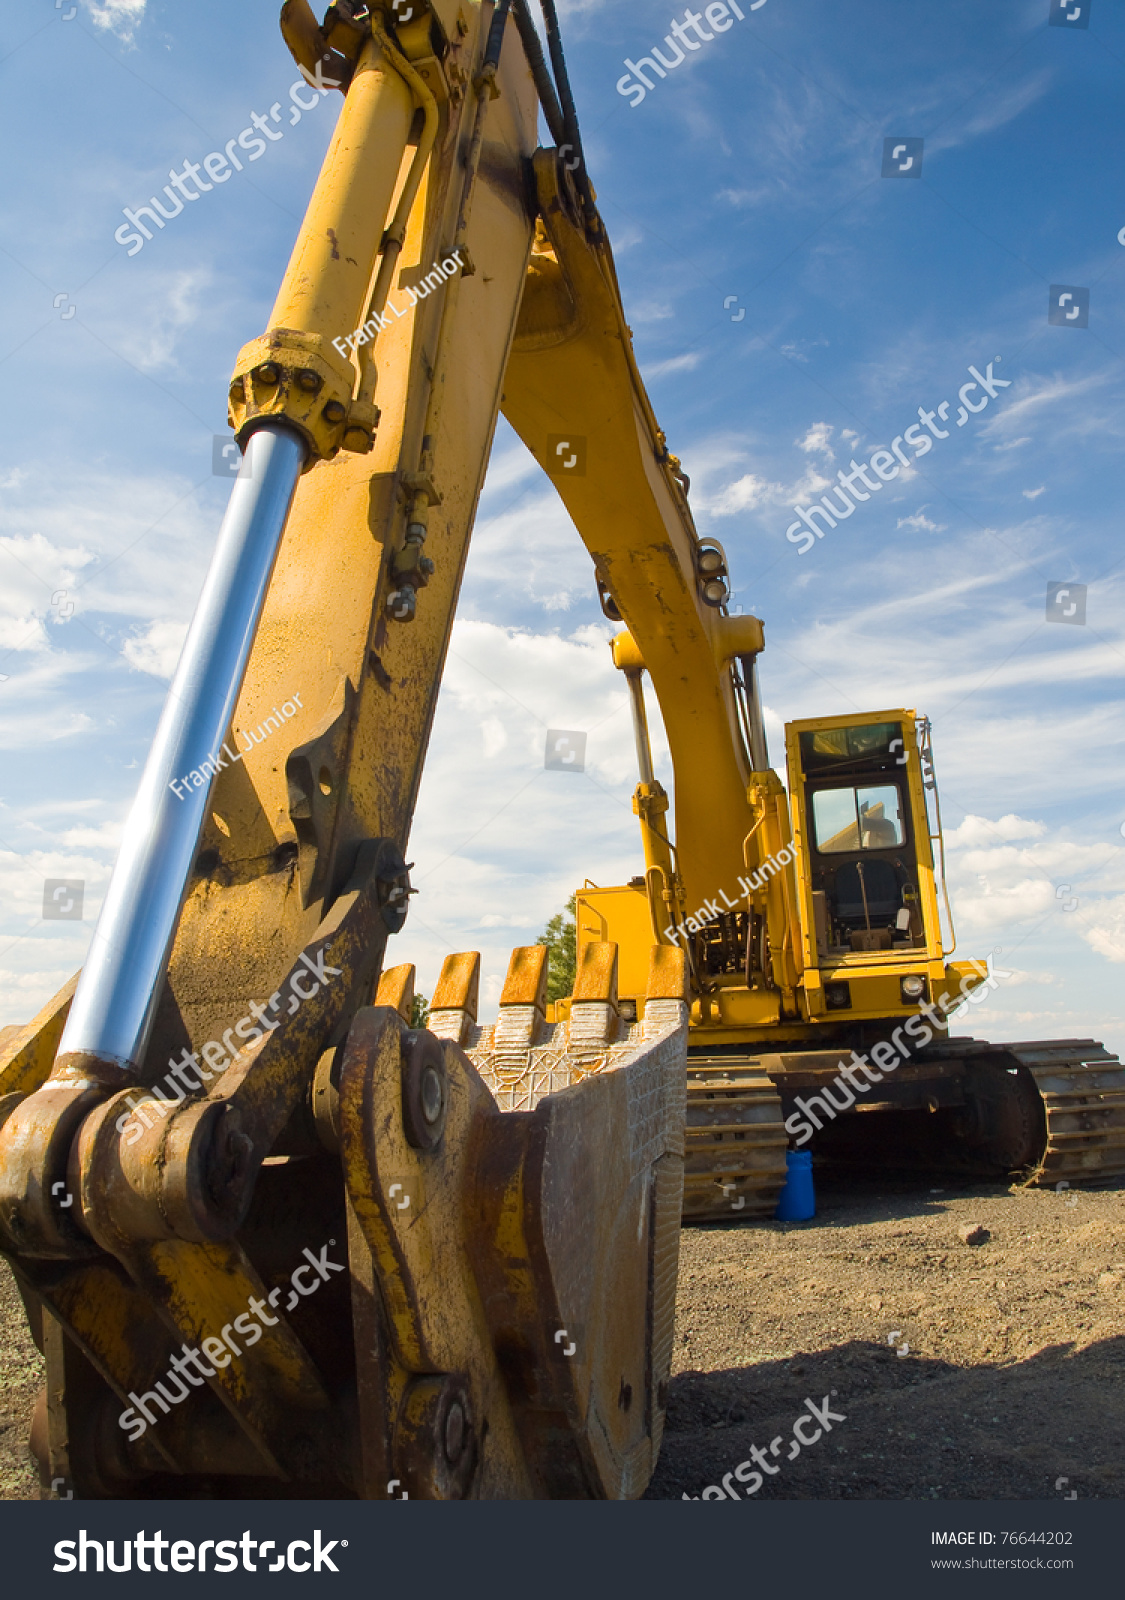 Heavy Duty Construction : Heavy duty construction equipment parked worksite stock